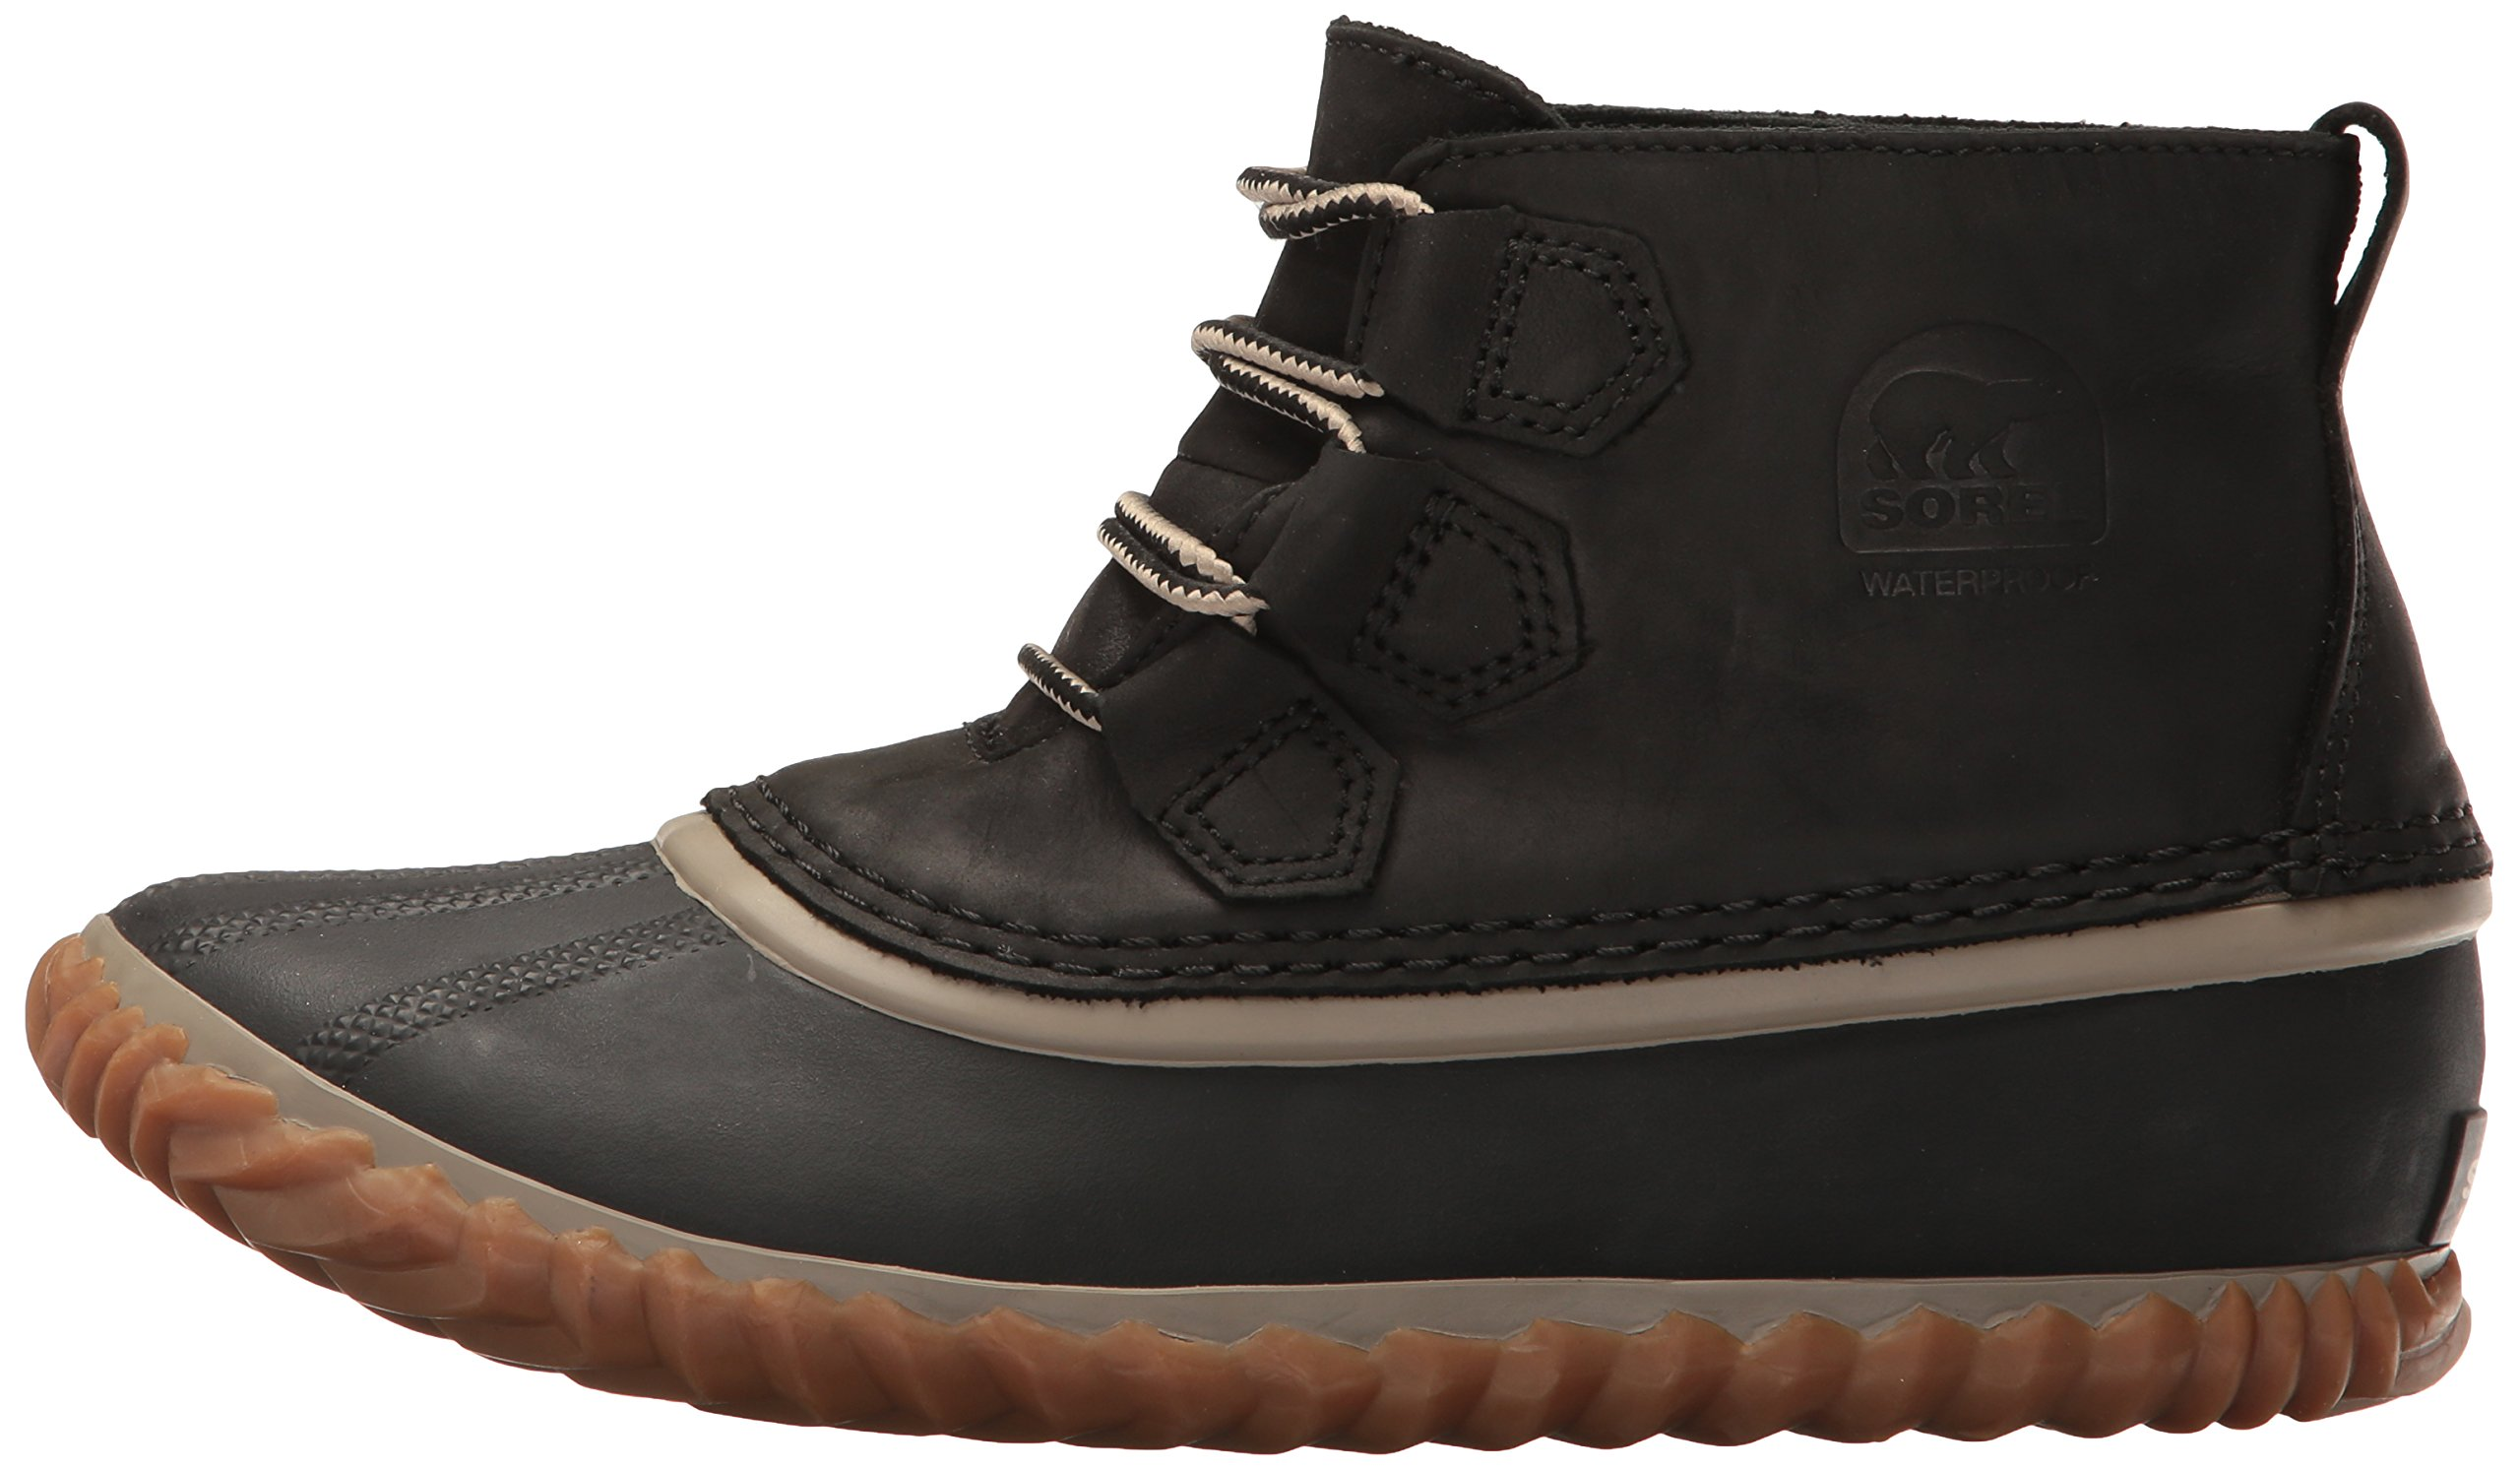 SOREL Women's Out N About Leather Rain Snow Boot, Black, 7.5 M US by SOREL (Image #5)